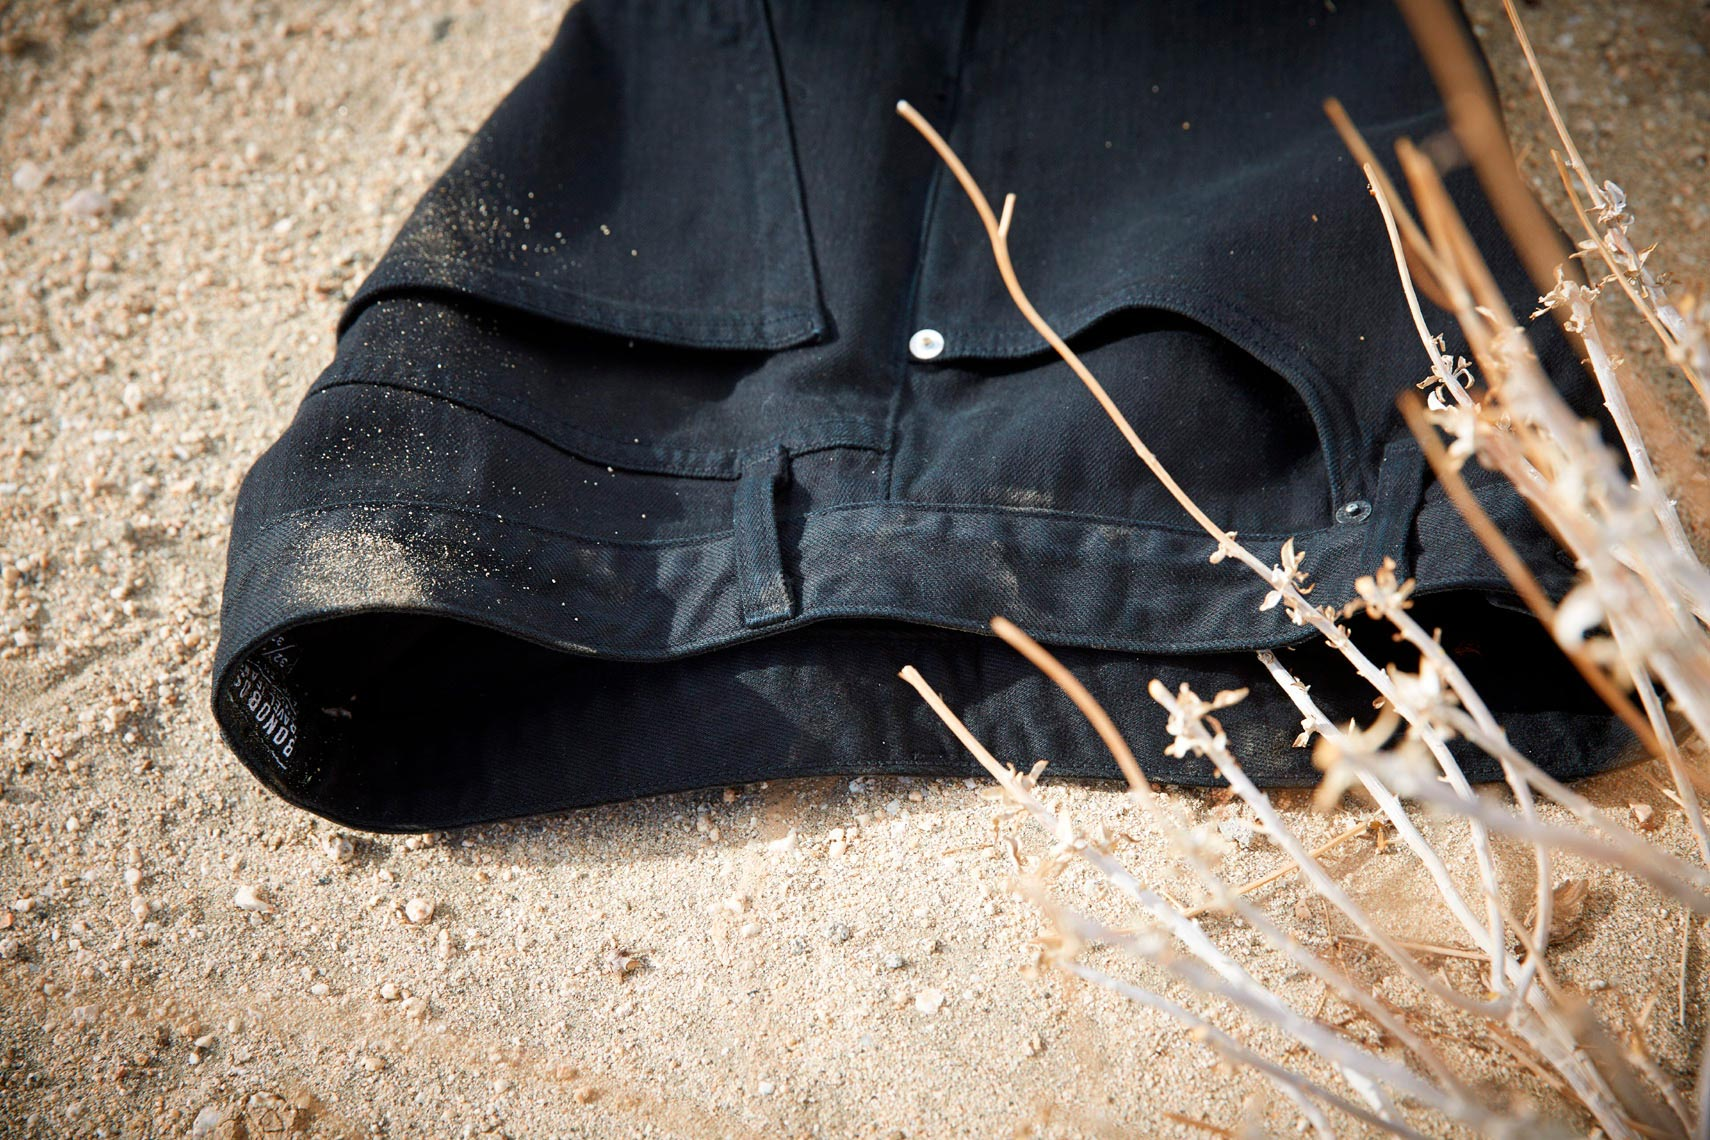 pair of black dress pants on sandy desert floor